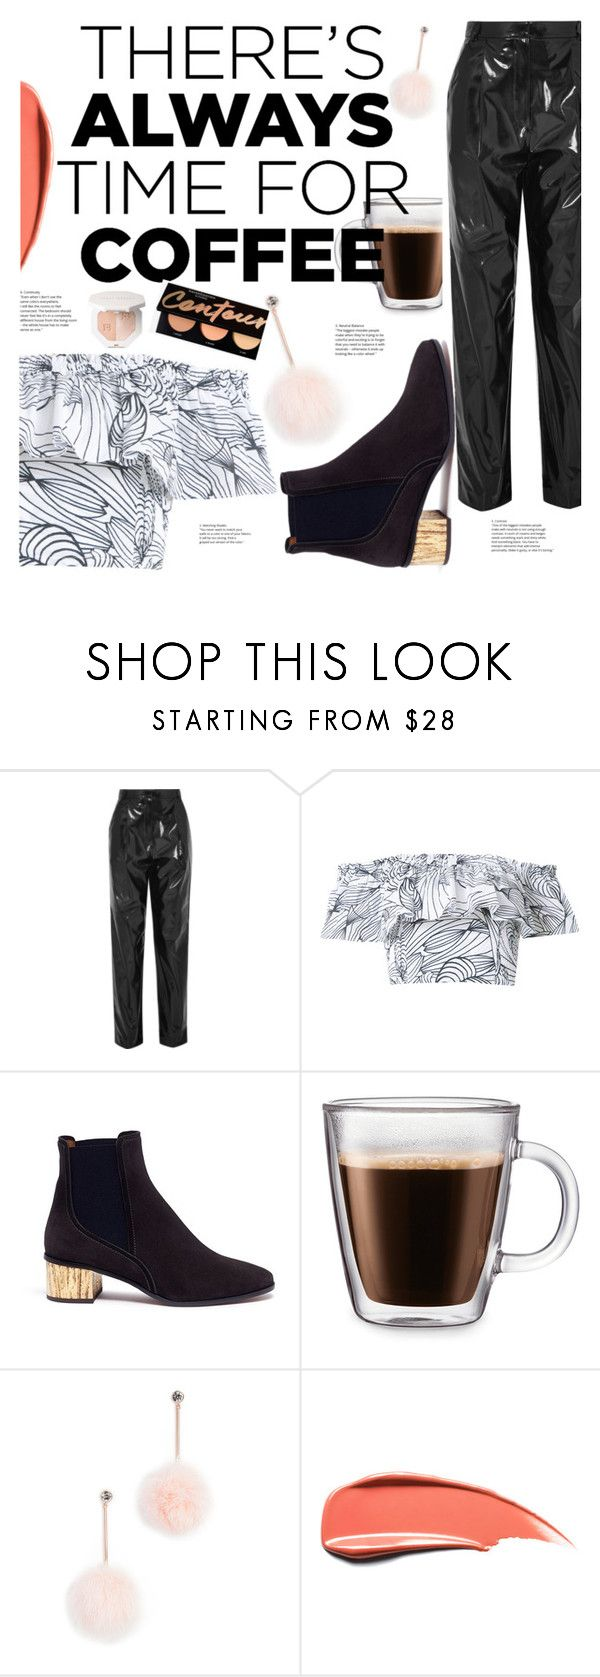 """""""Coffee Time"""" by elenaafiya ❤ liked on Polyvore featuring TIBI, Isolda, Chloé, Frontgate, Kate Spade, polyvoreeditorial and CoffeeDate"""